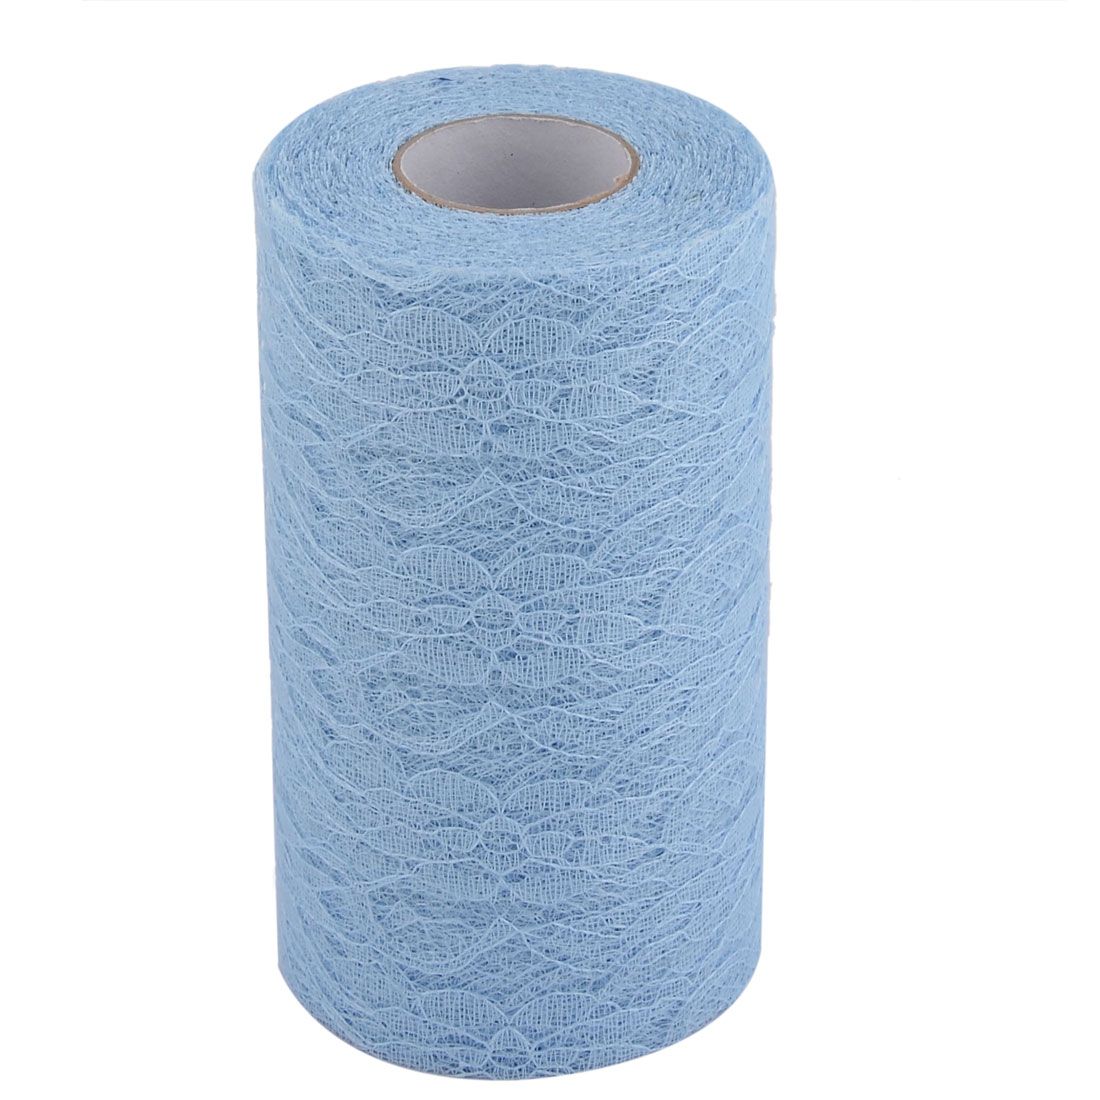 Party Lace Banquet Hall DIY Decor Tulle Spool Roll Light Blue 6 Inch x 25 Yards